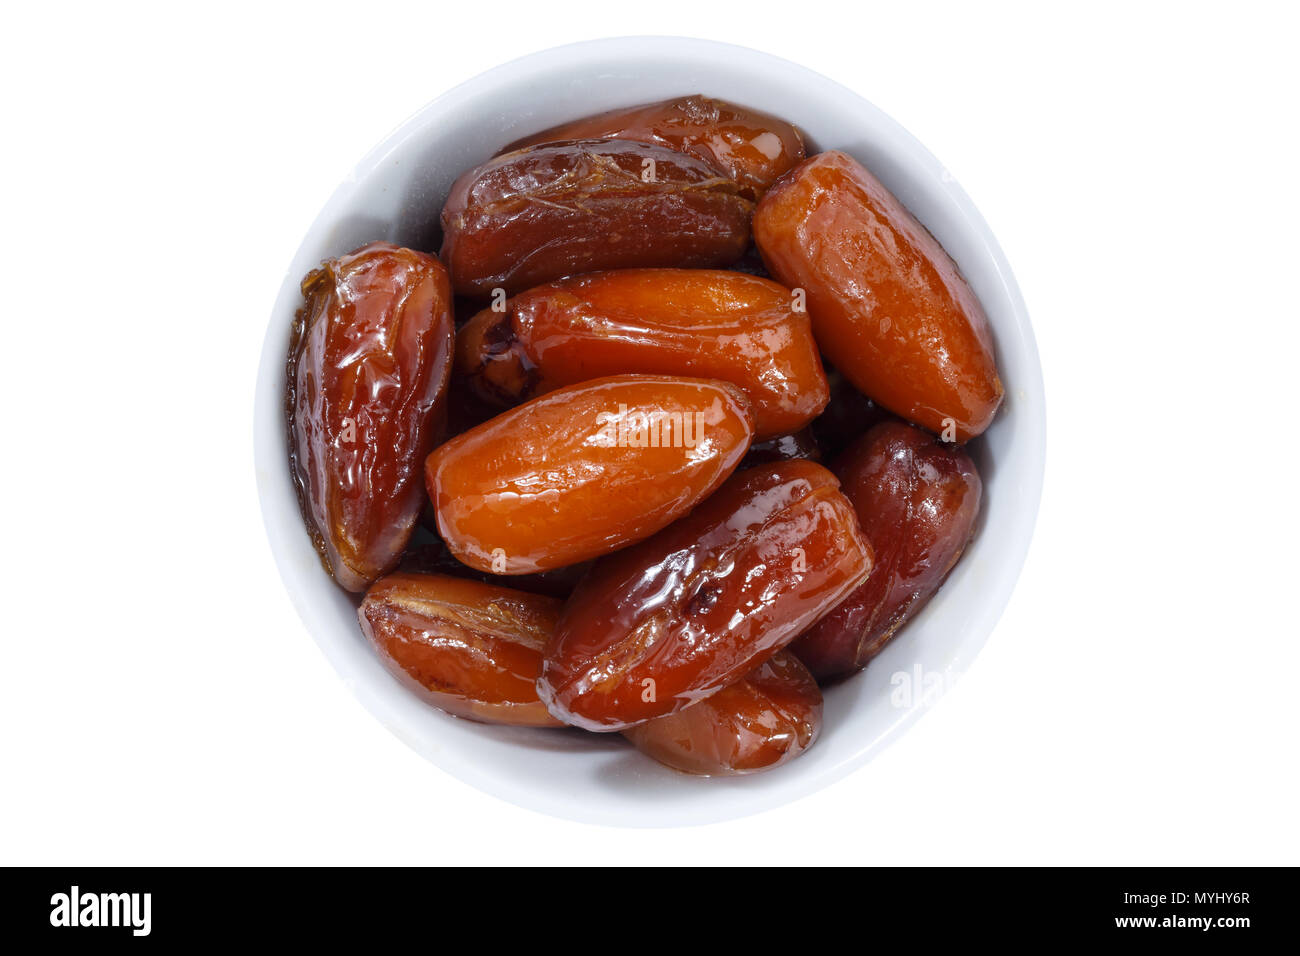 Dates fruit date from above bowl isolated on a white background - Stock Image